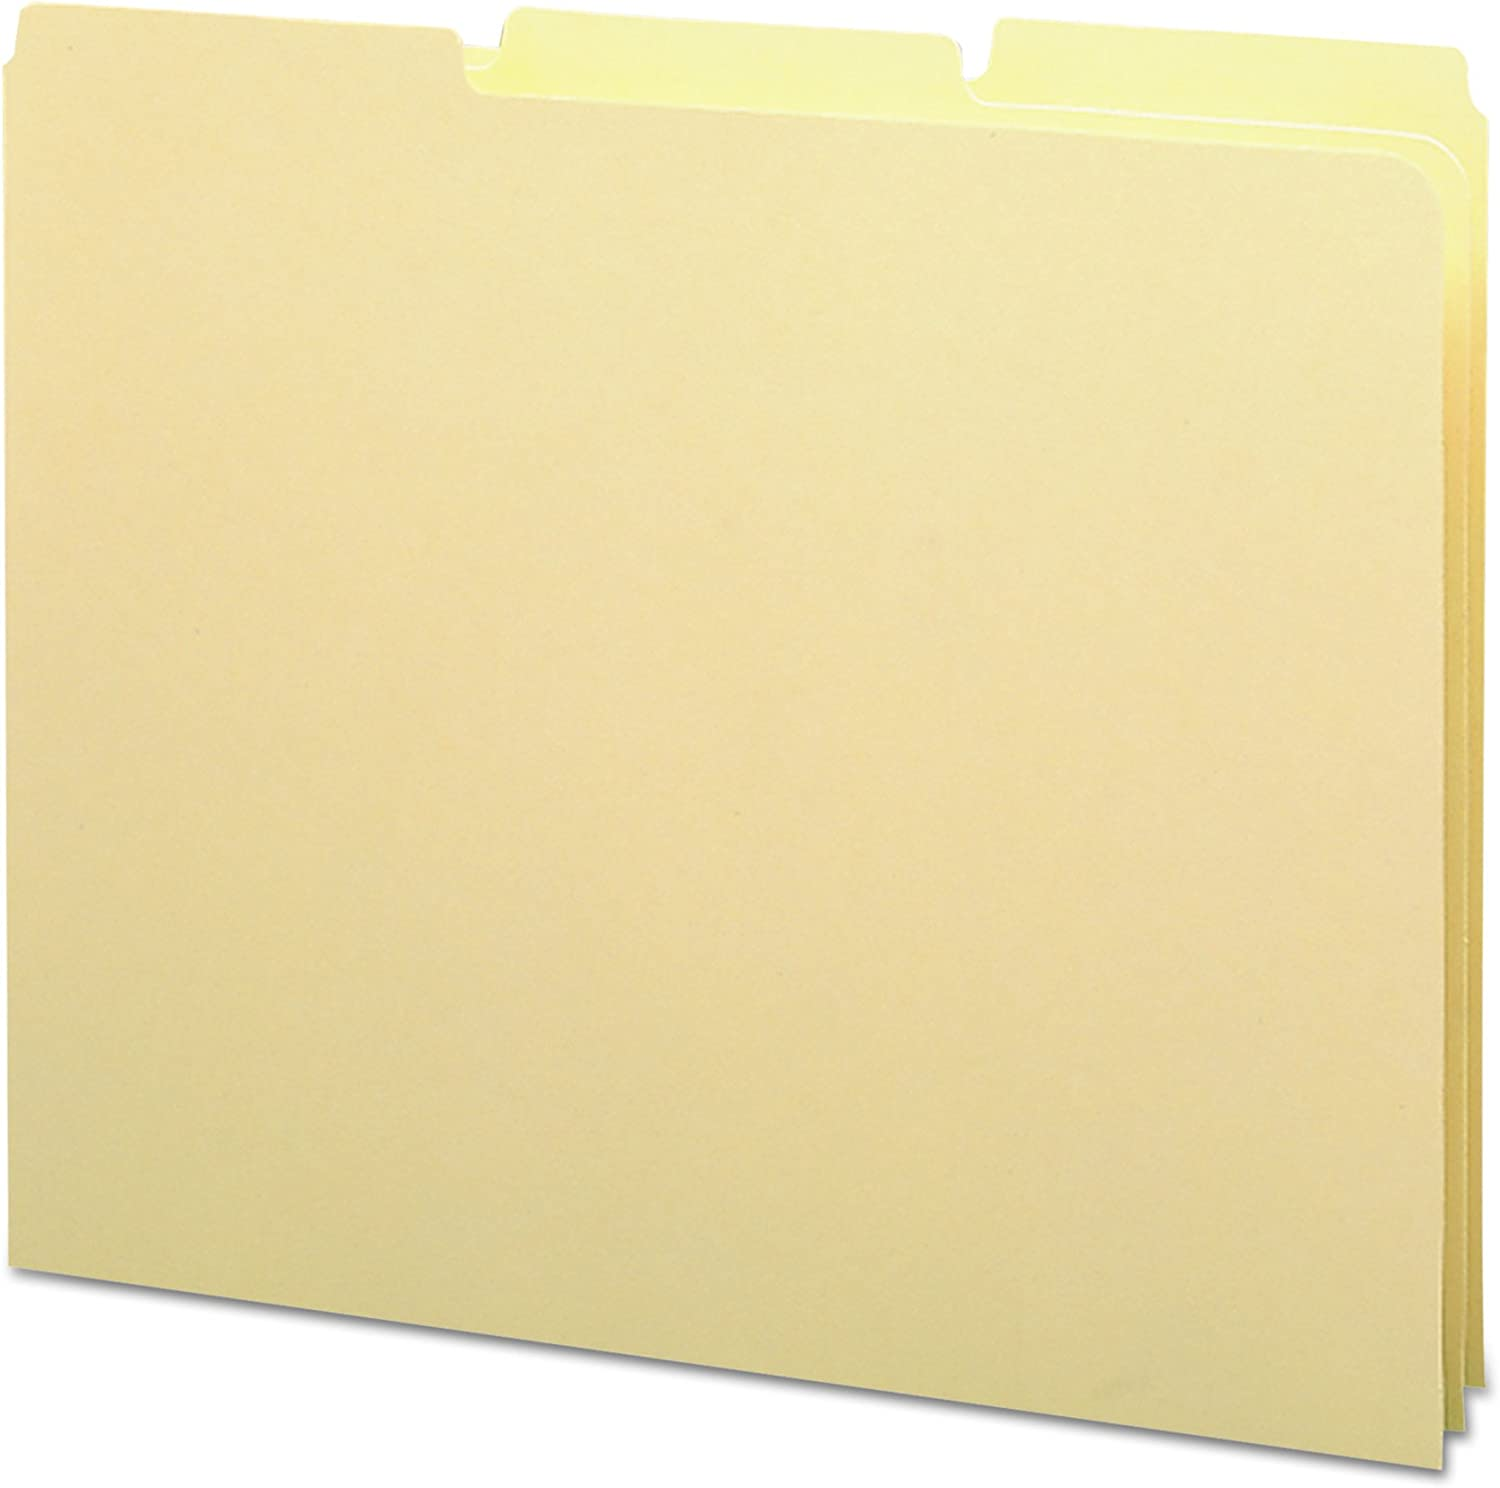 alta calidad general Recycled Tab File File File Guides, Blank, 1 3 Tab, 18 Point Manila, Letter, 100 Box  comprar descuentos